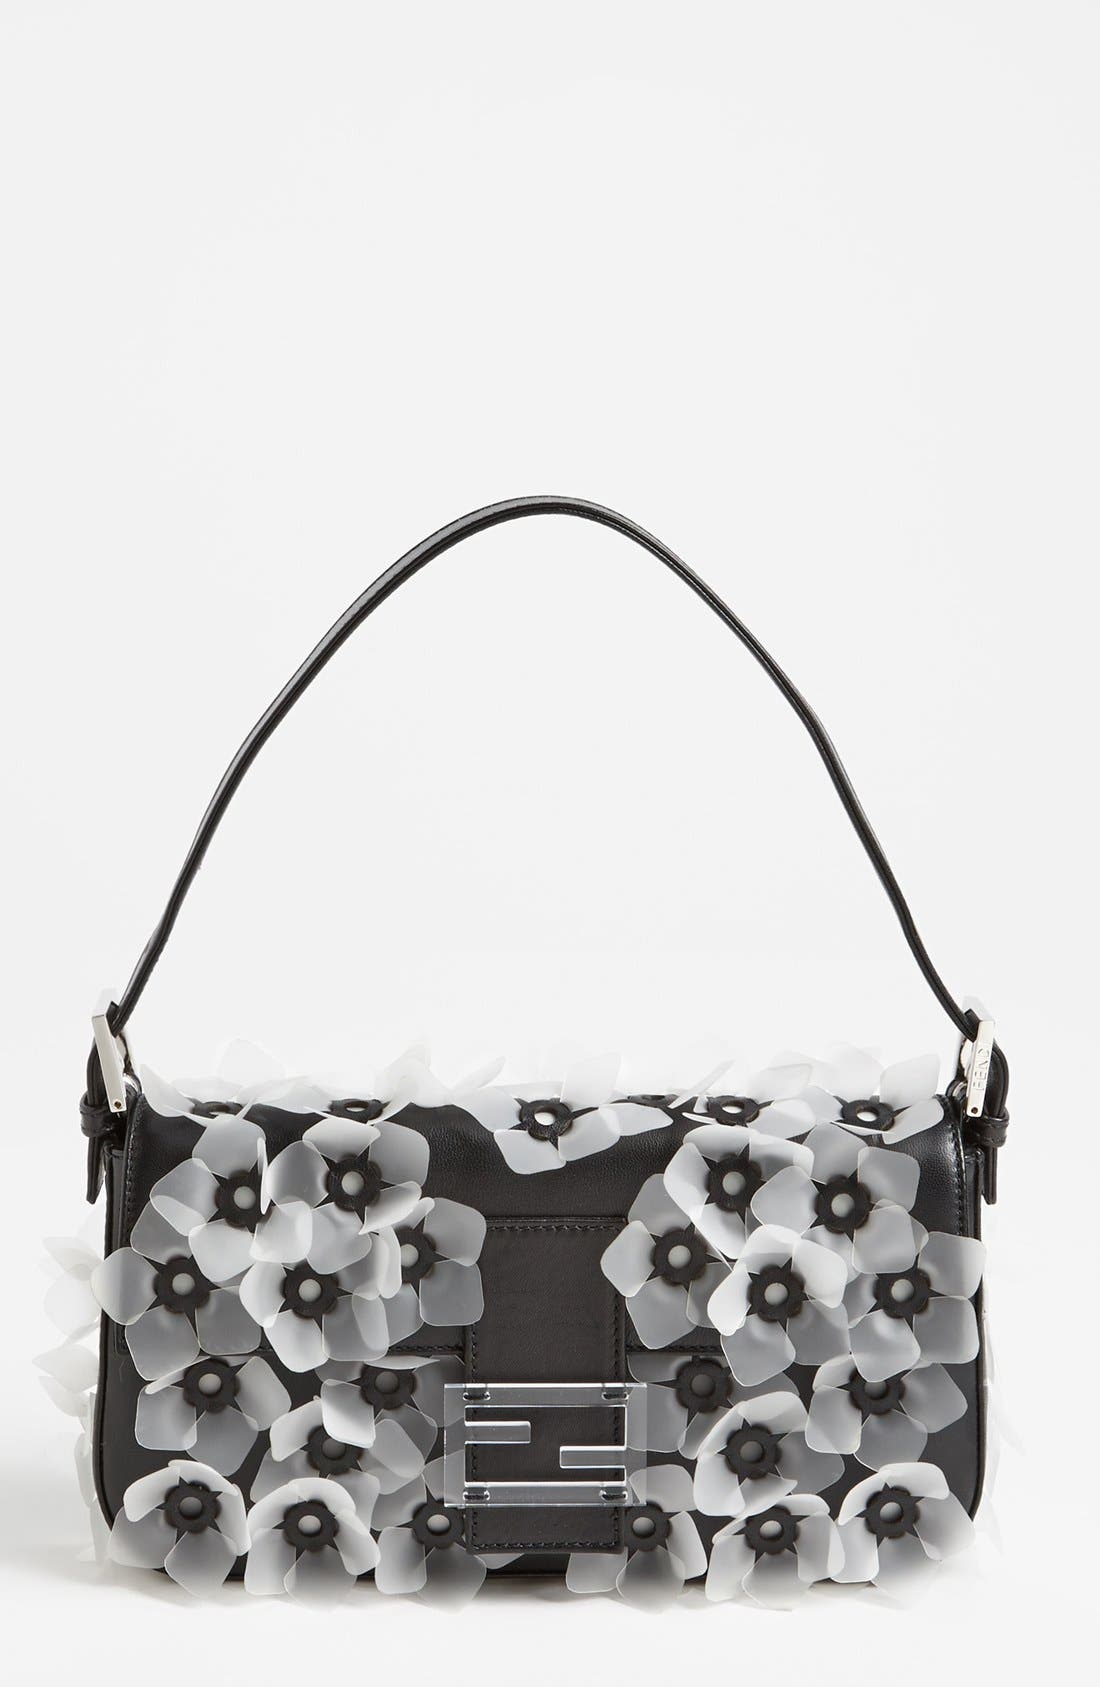 Main Image - Fendi 'Flower' Leather Baguette